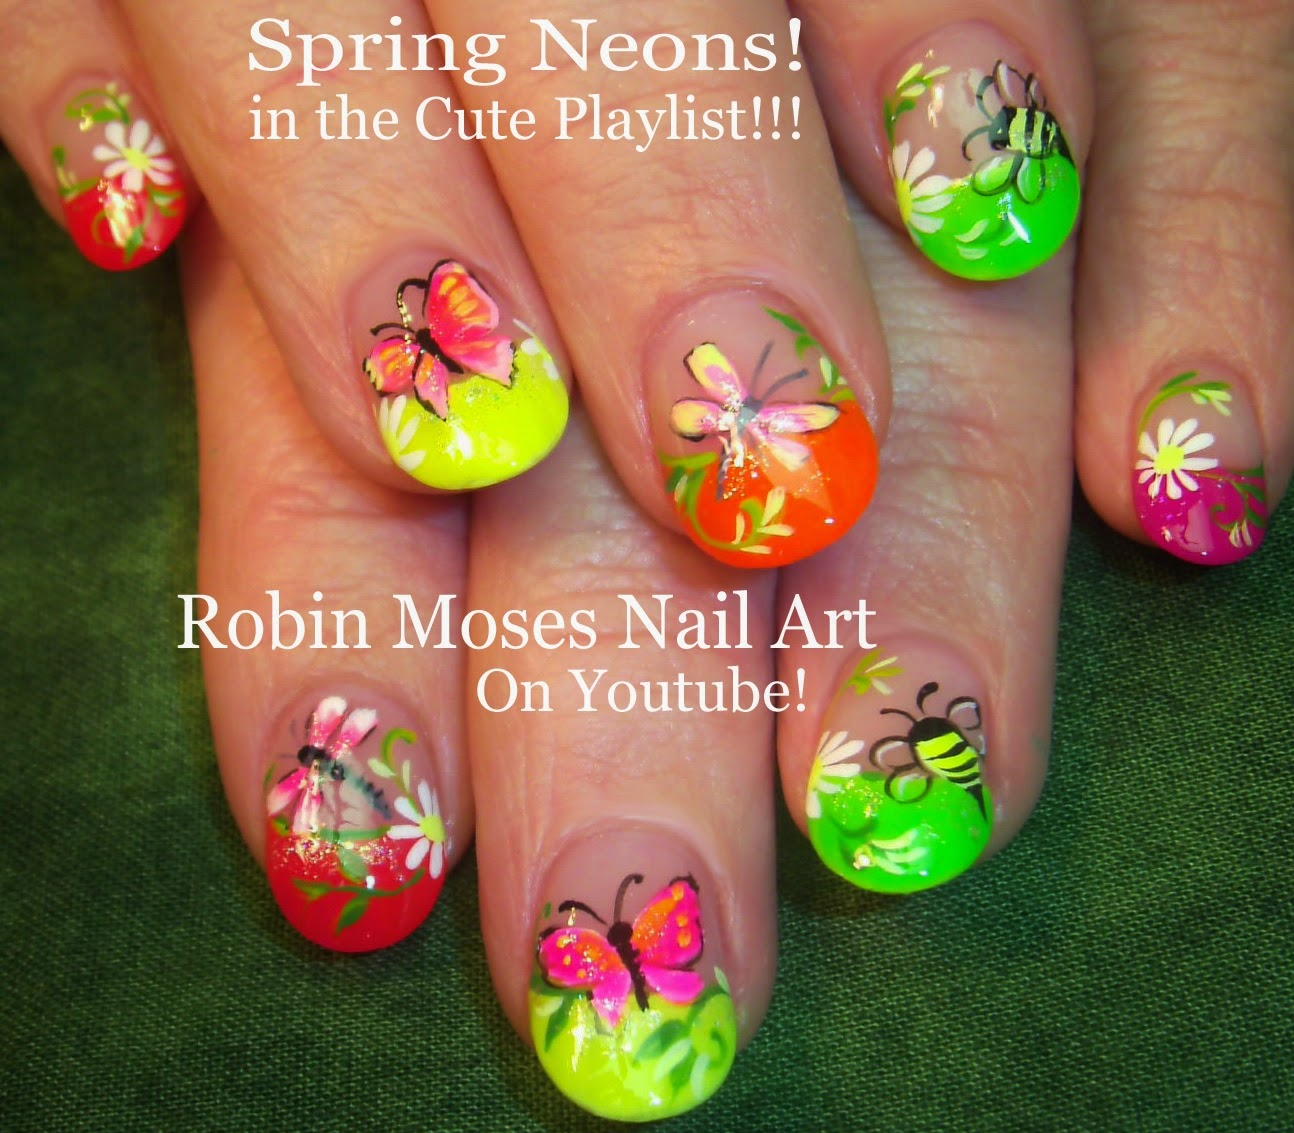 Robin Moses Nail Art: March 2015